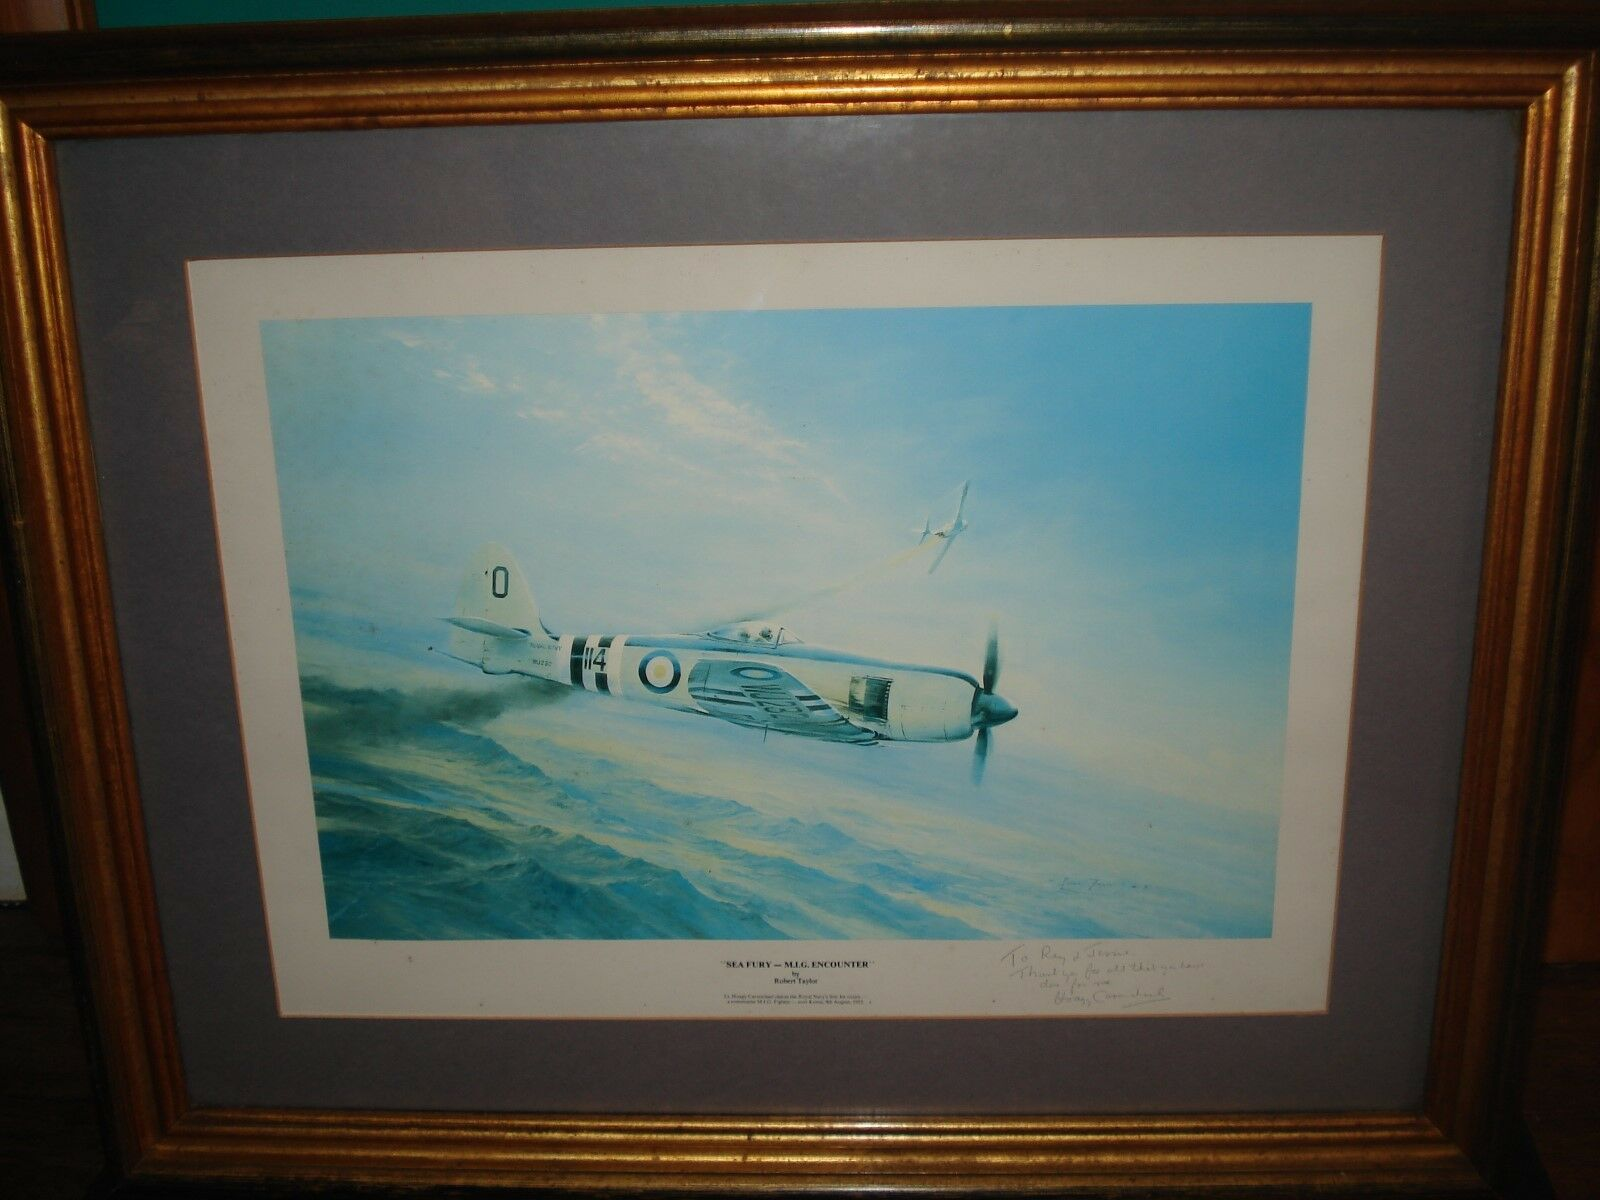 Sea Fury - M.I.G. Encounter print, a personnalised print from the pilot himself.